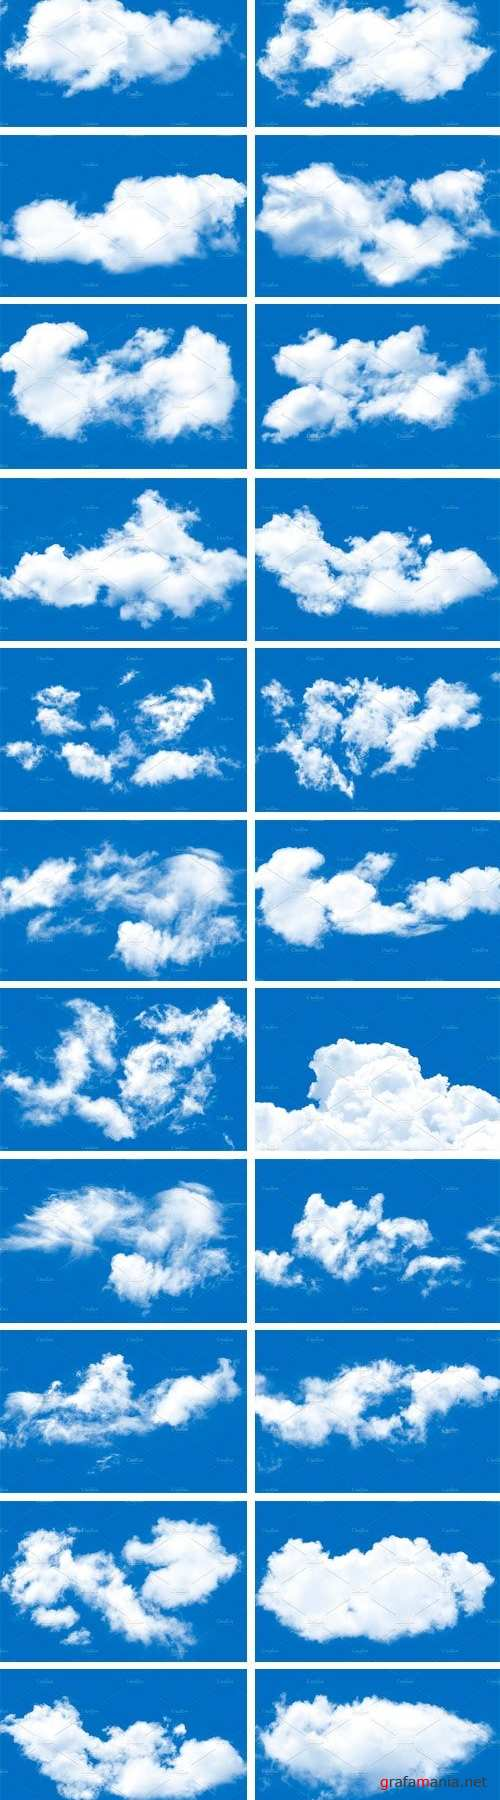 Clouds Brushes - 2165569